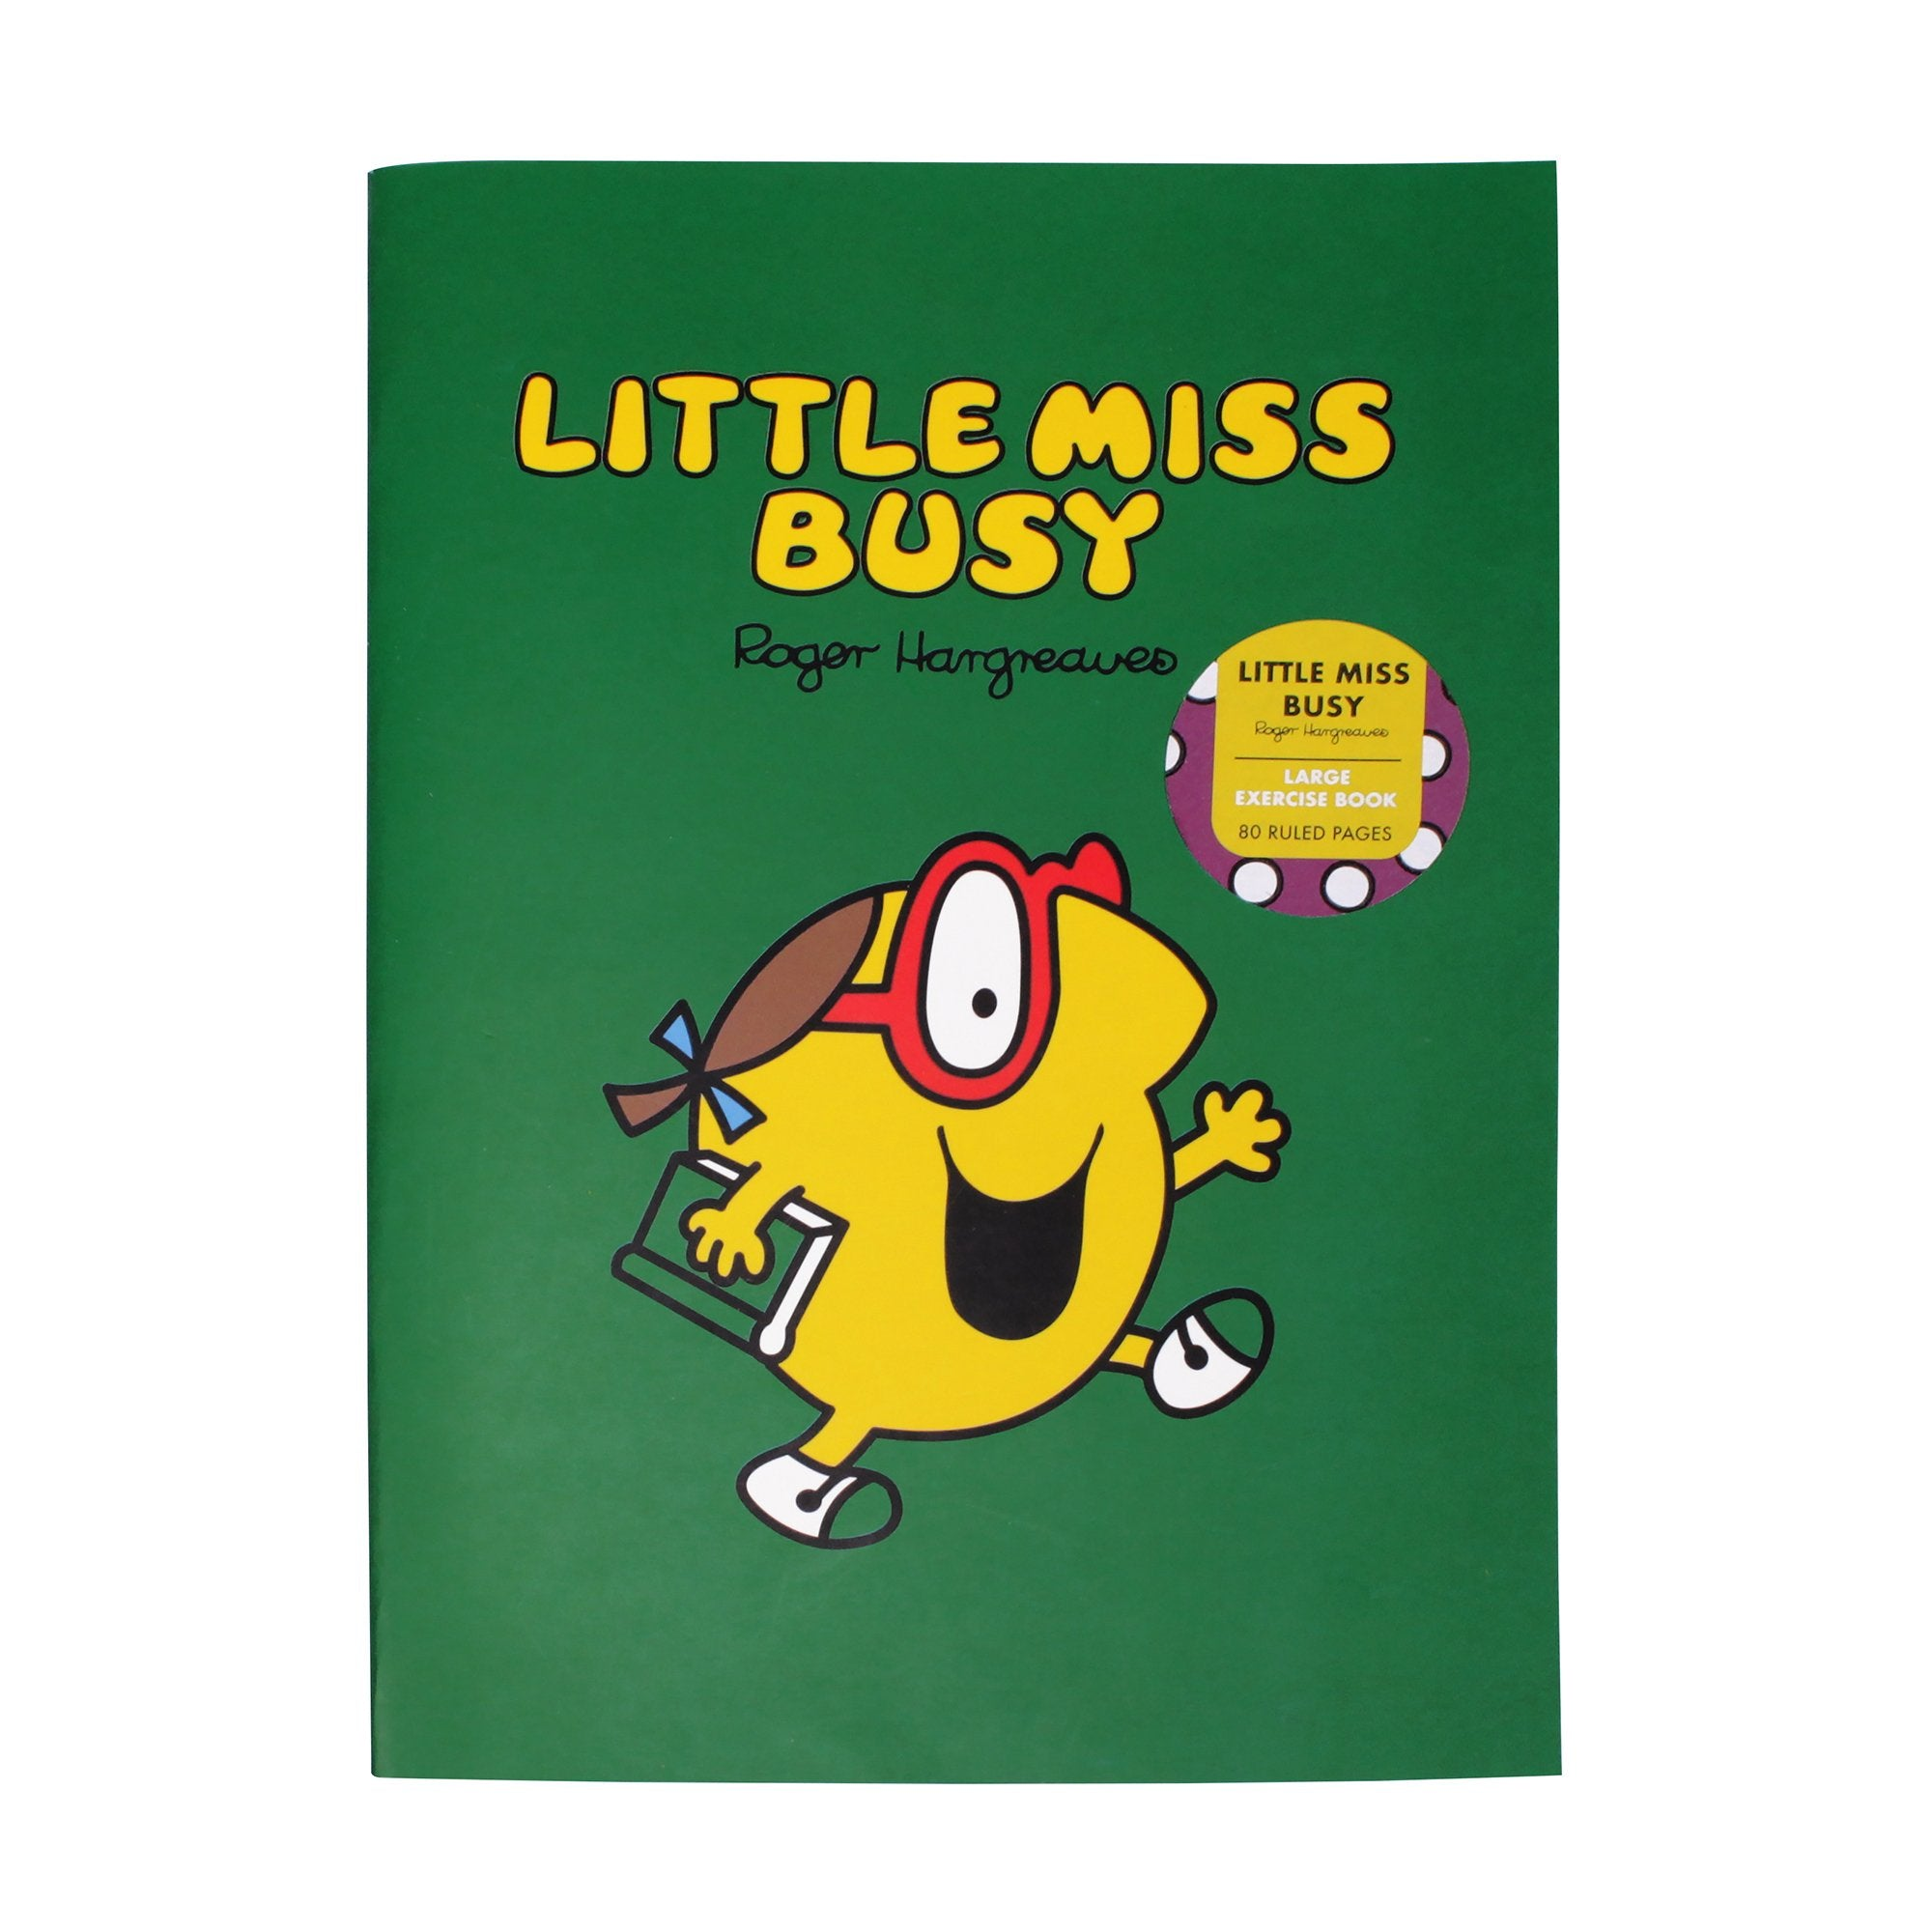 Mr. Men Little Miss Exercise Book - Little Miss Busy - Half Moon Bay US